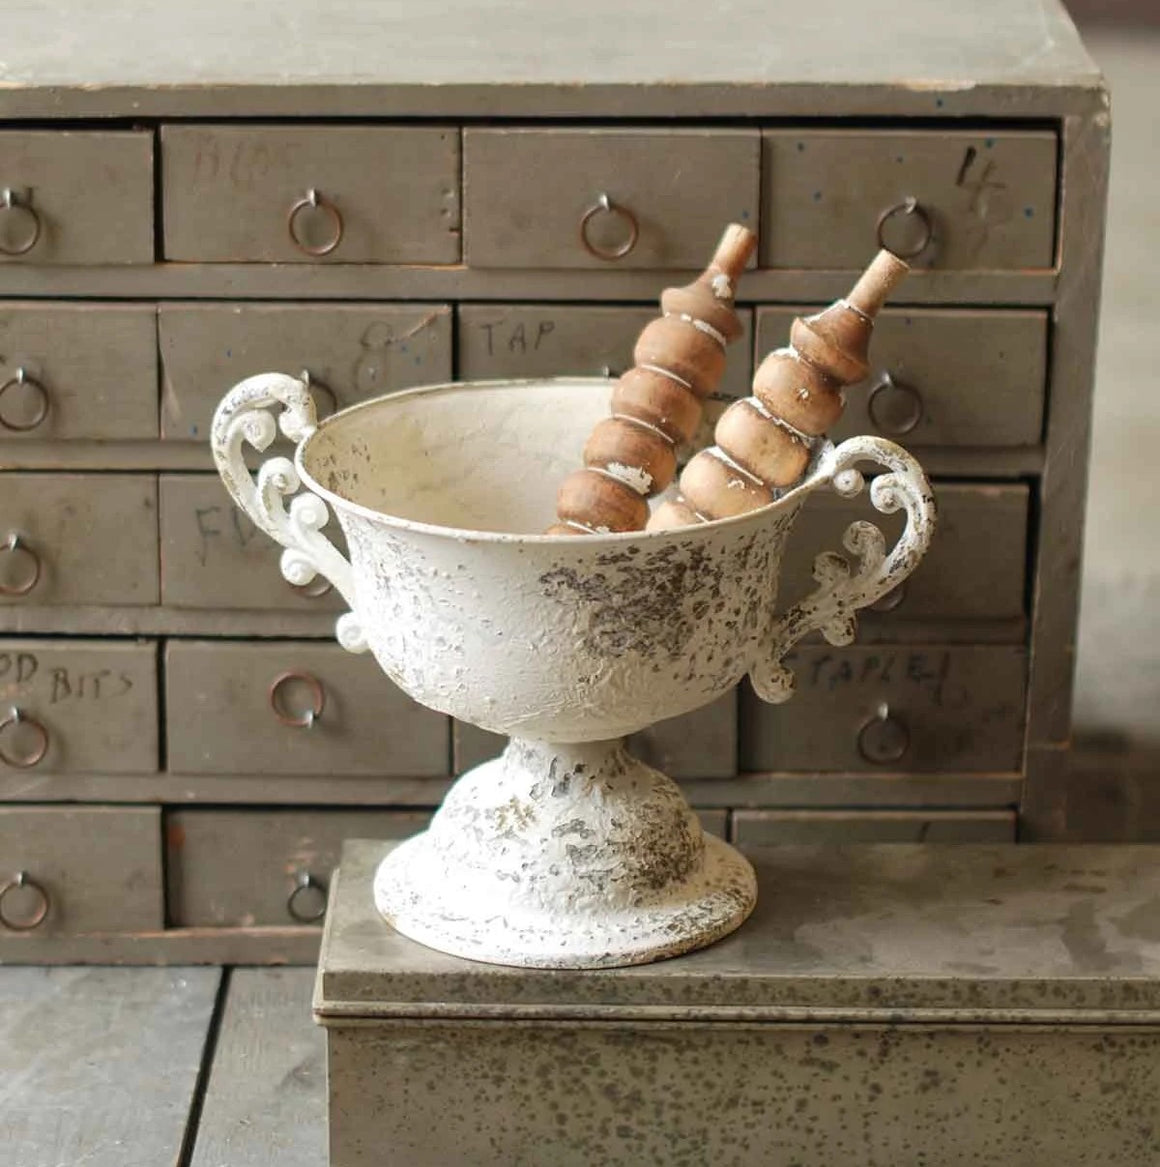 "This Chippy Cream Trophy Urn detailed handles is great for candles, plants or any little decorative pieces you cherish. The chippy antique white paint is perfect for country cottage style decor. The base is sturdy with decorative detailing. Measures 12"" wide with handles and 6"" at base by 7.5""H. (Candle, wreath and wooden spindles not included.)"